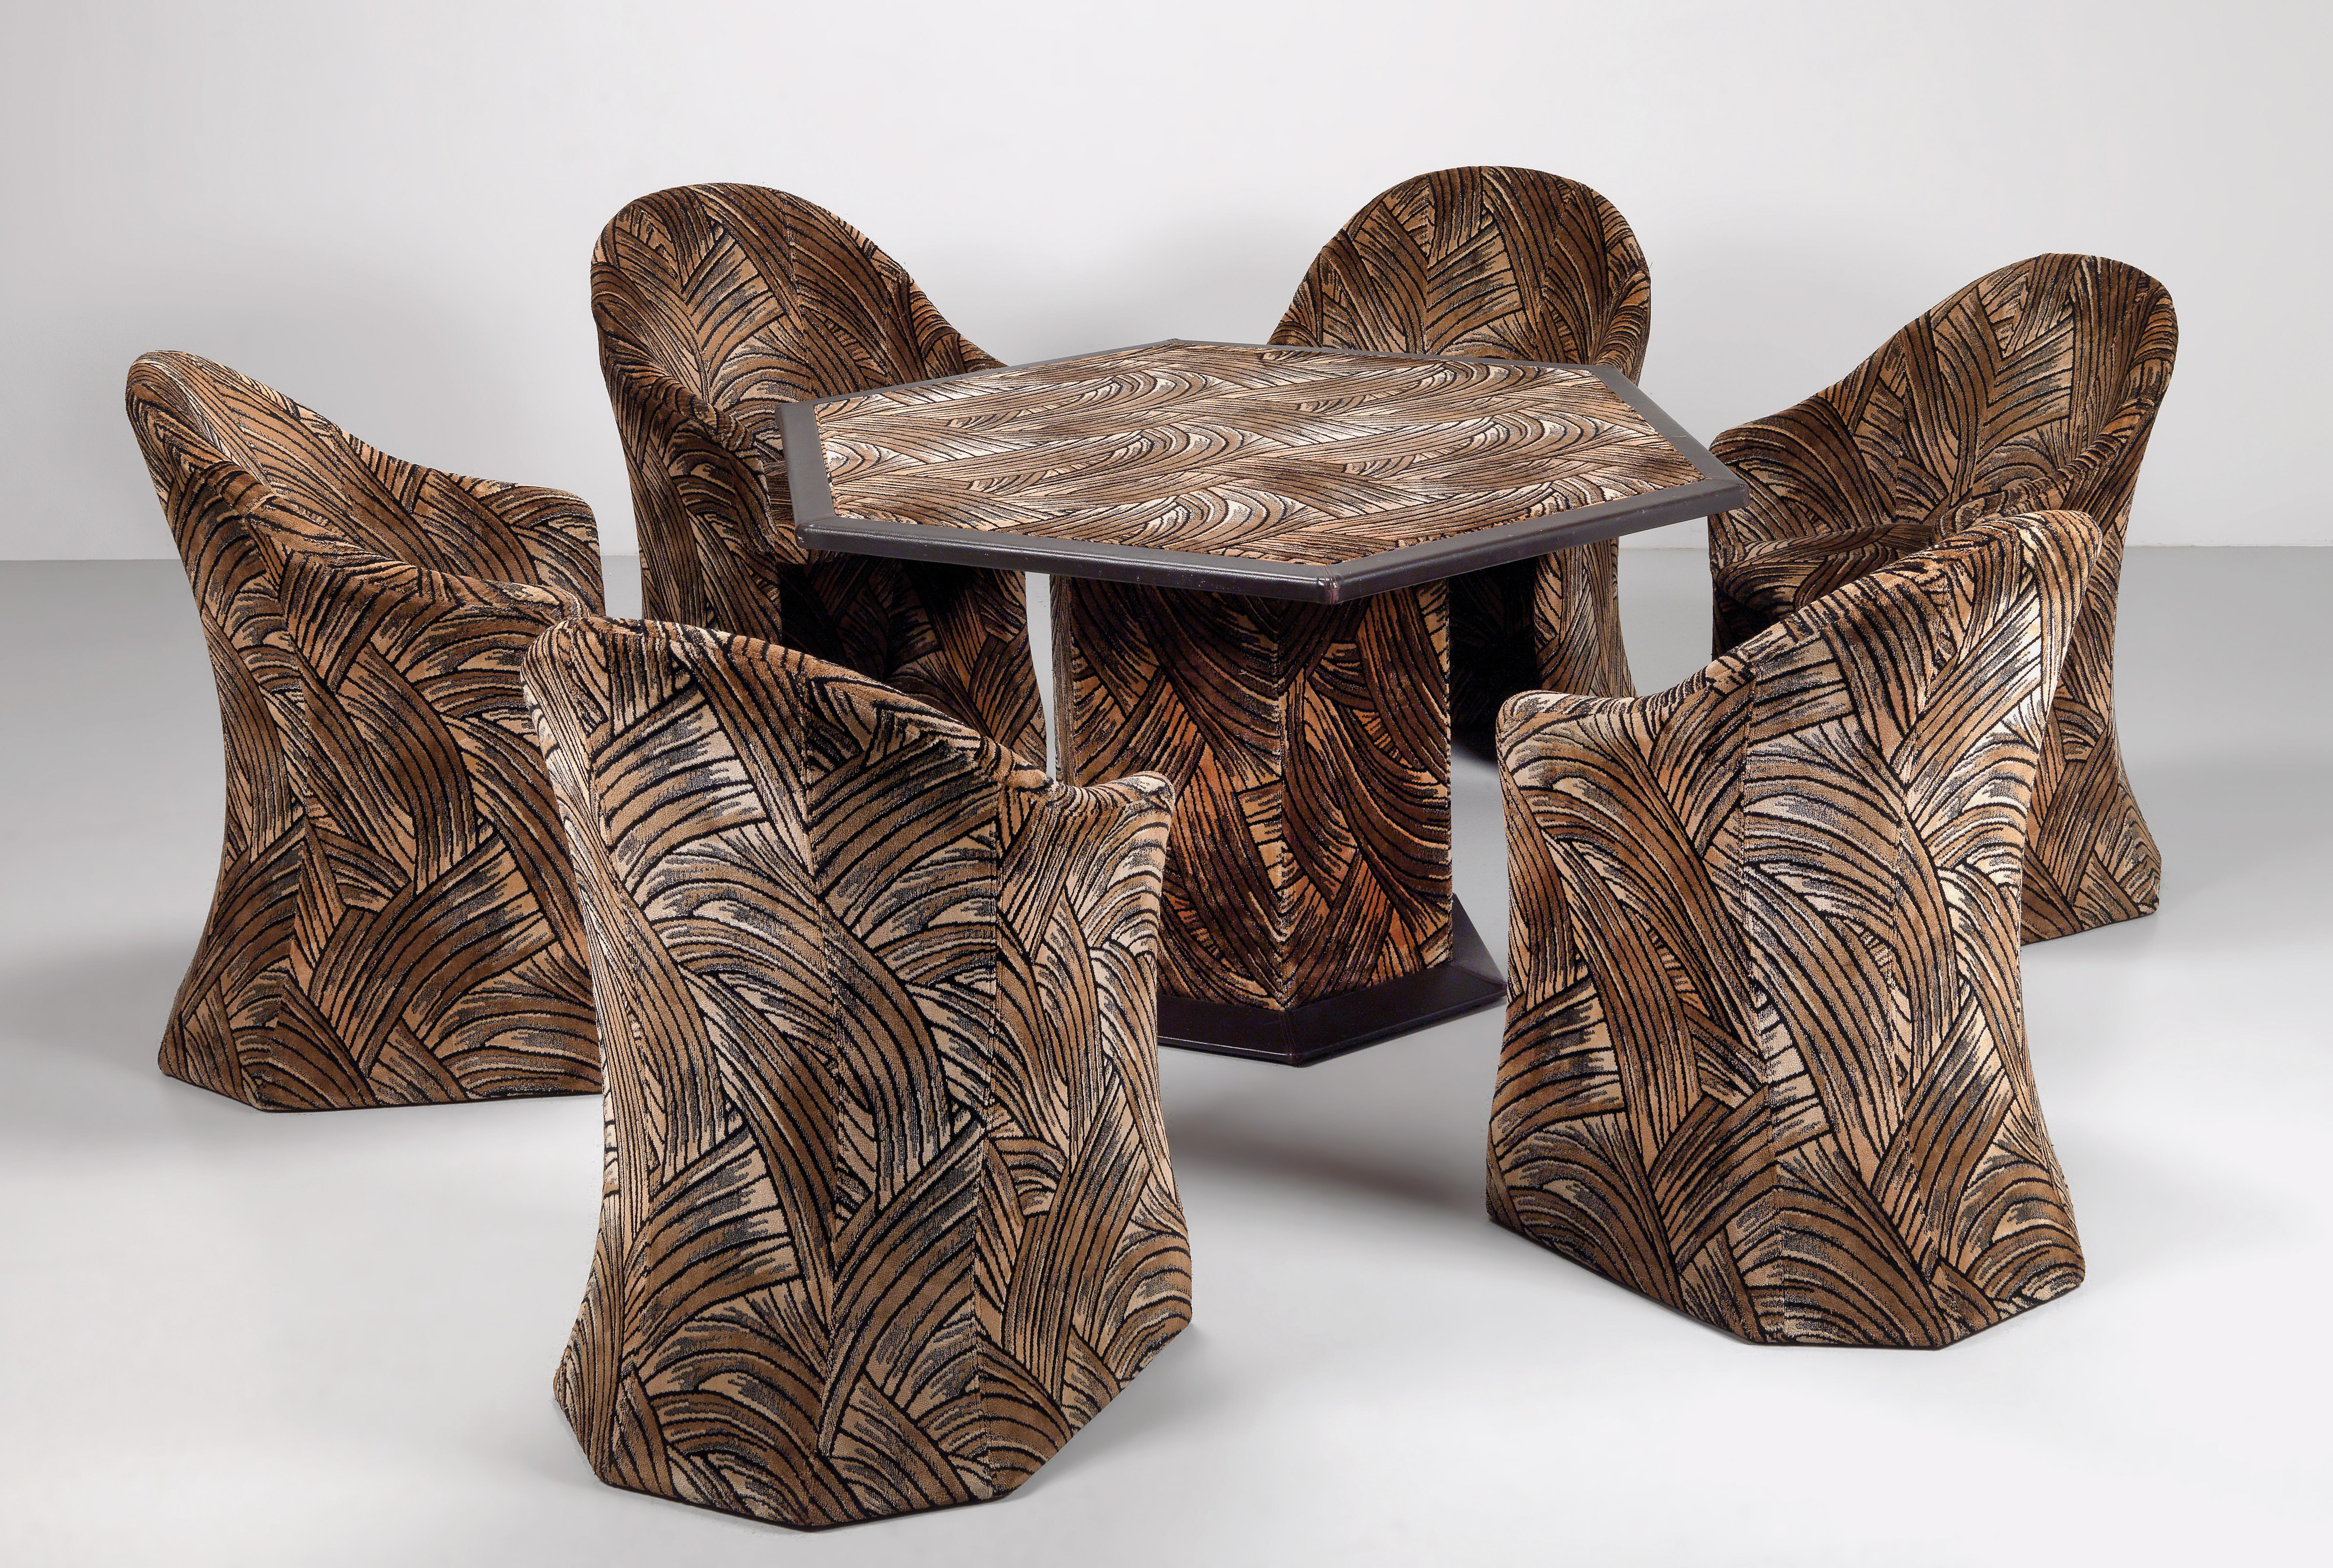 A Set Of Six Chairs And A Dining Table Pierre Cardin Design 2017 06 20 Estimate Eur 3 000 To Eur 5 000 Dorotheum